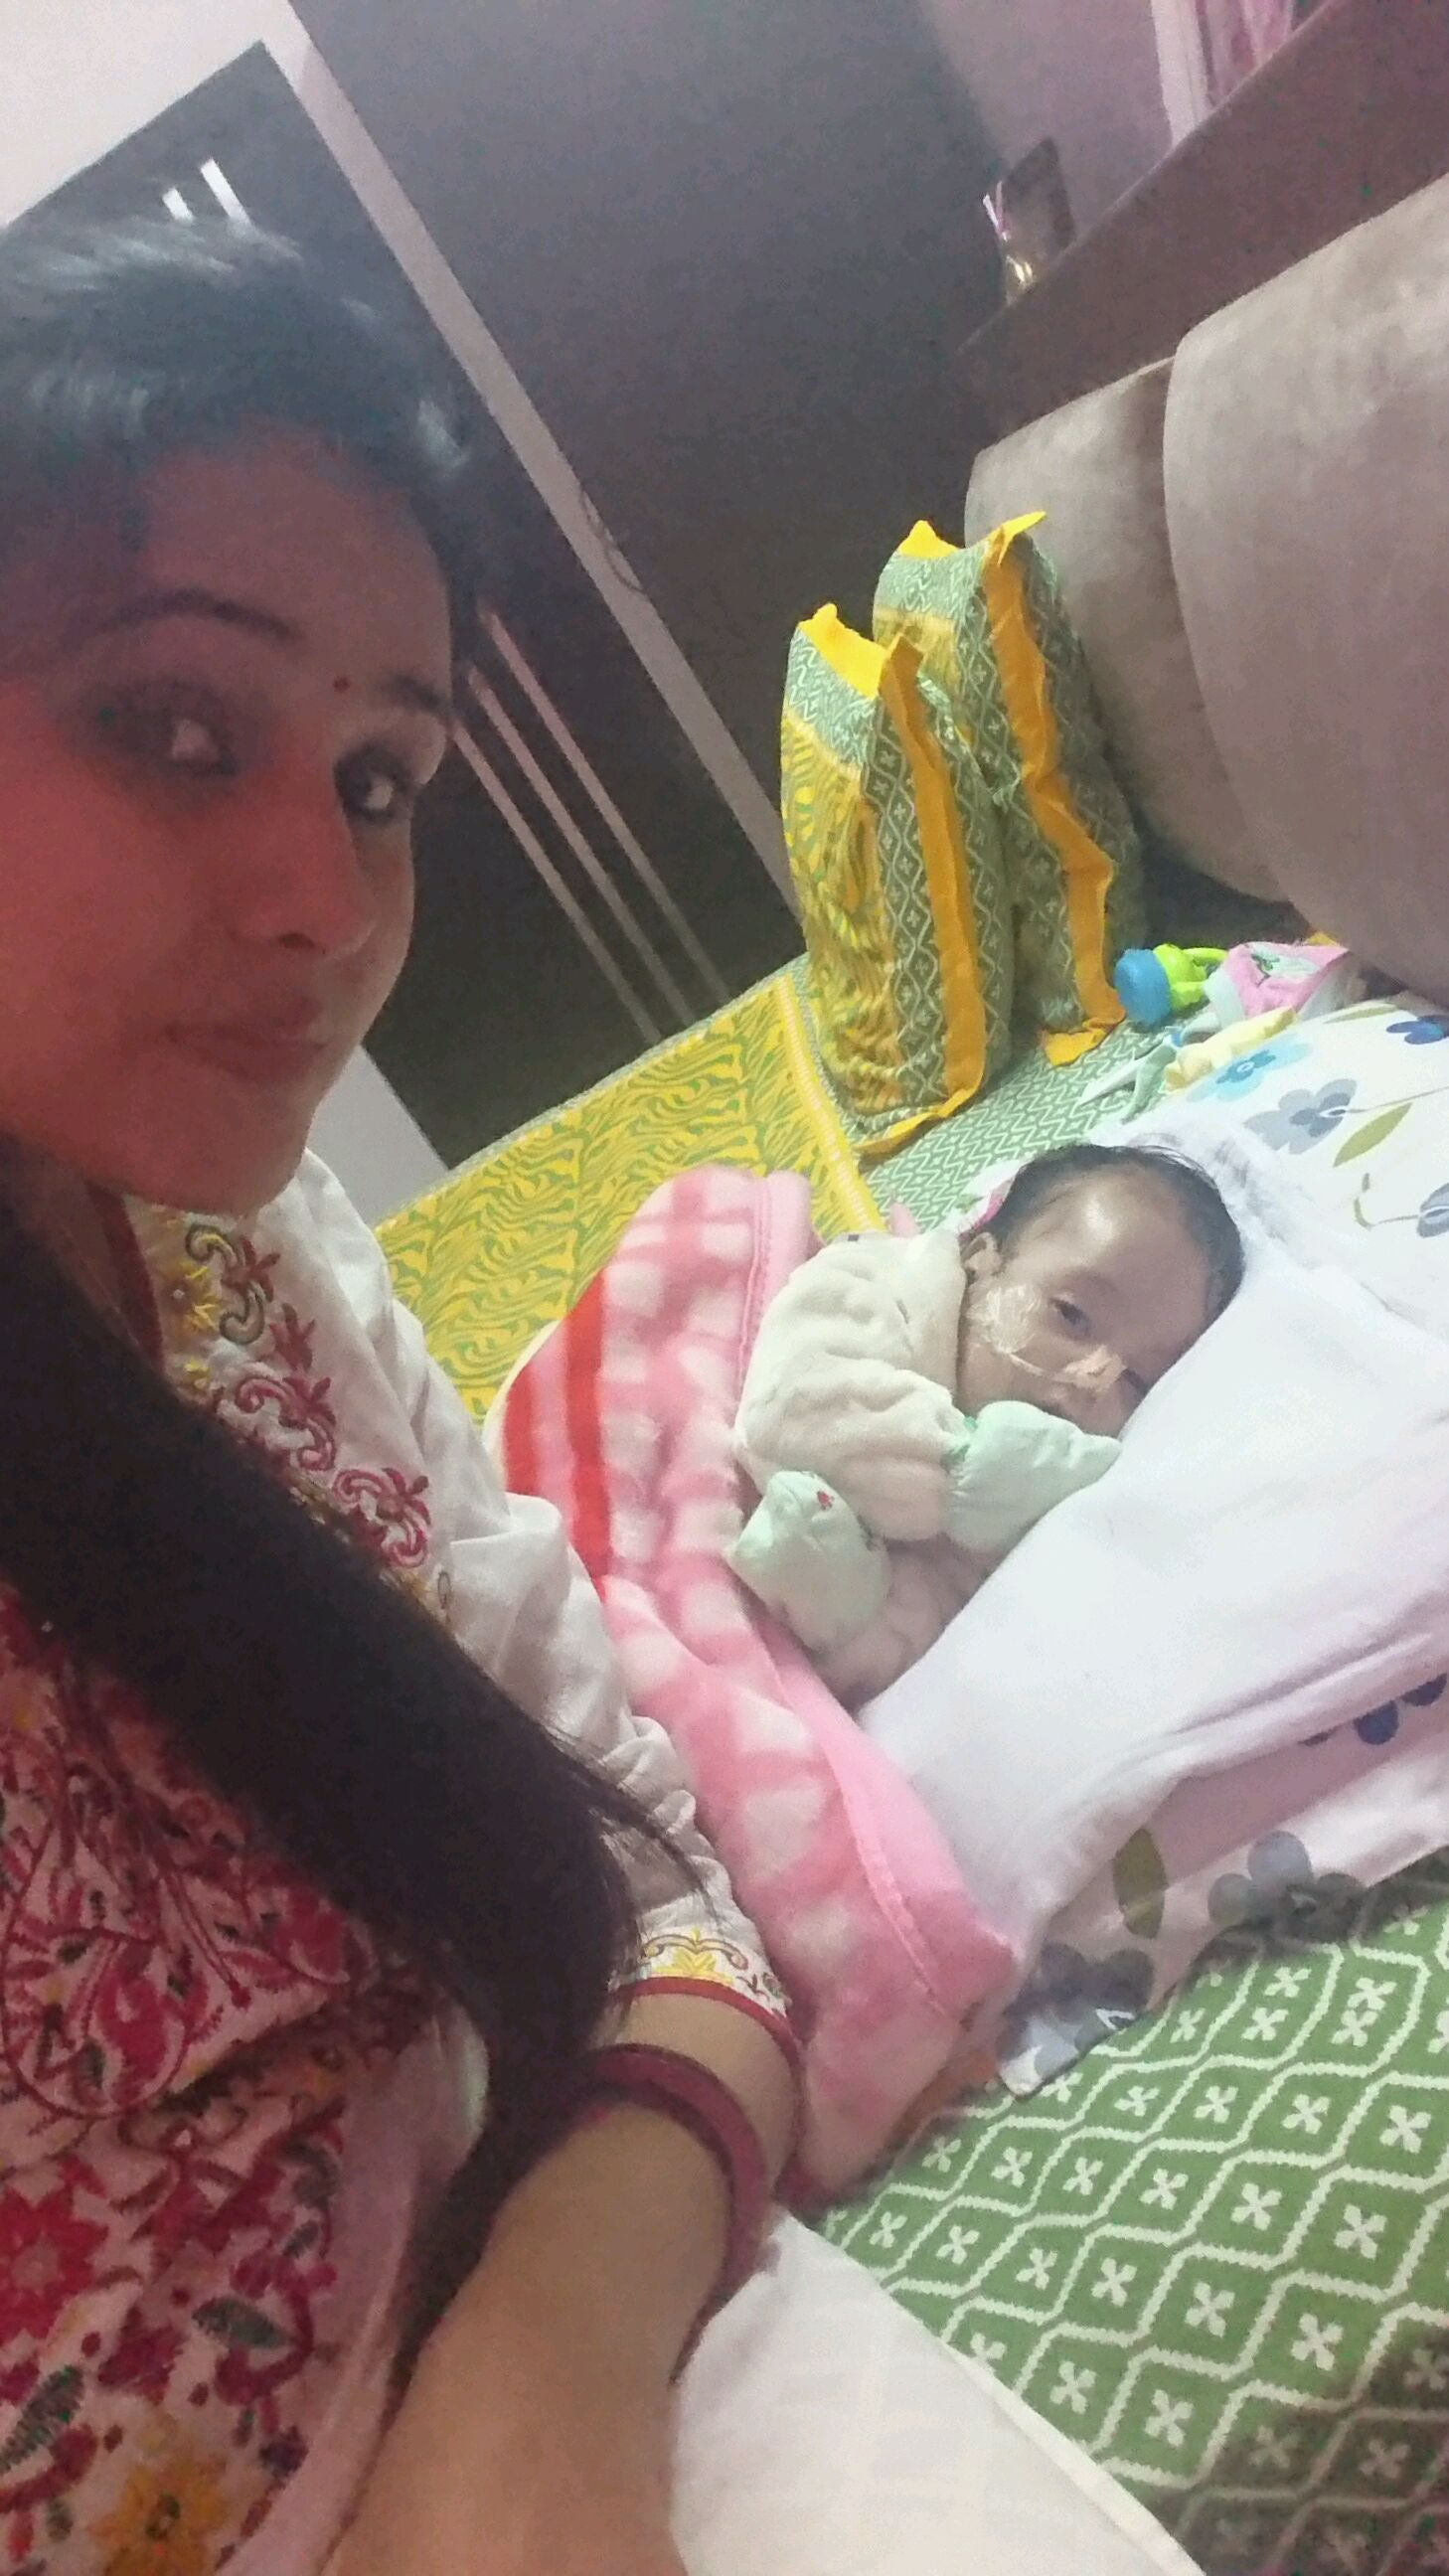 Hi, I m having 4 month old baby girl  She is a happy baby